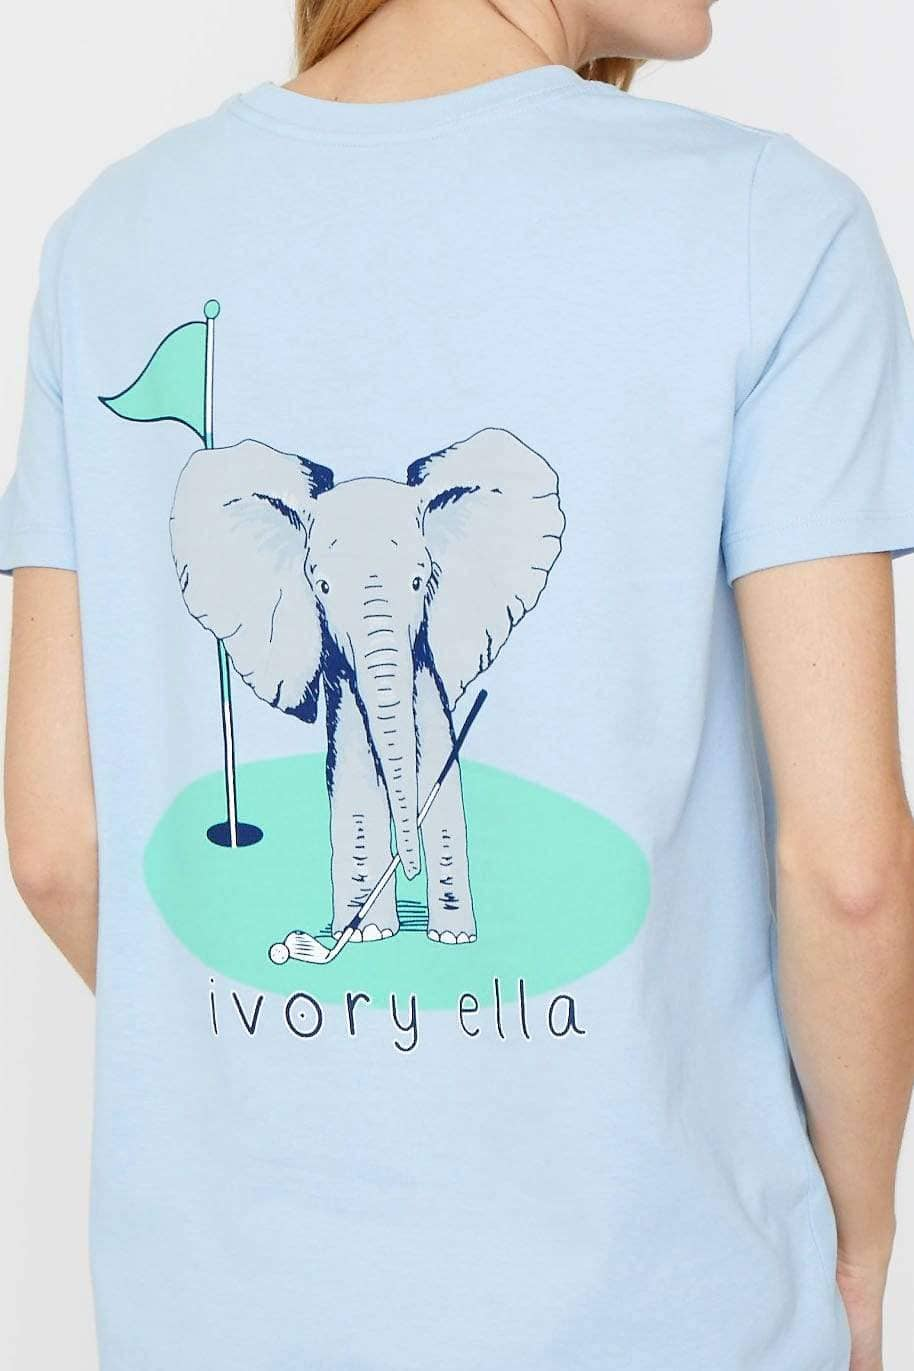 Ivory Ella Women's Short Sleeve Tees XXS Ella Fit Powder Blue Golf Tee